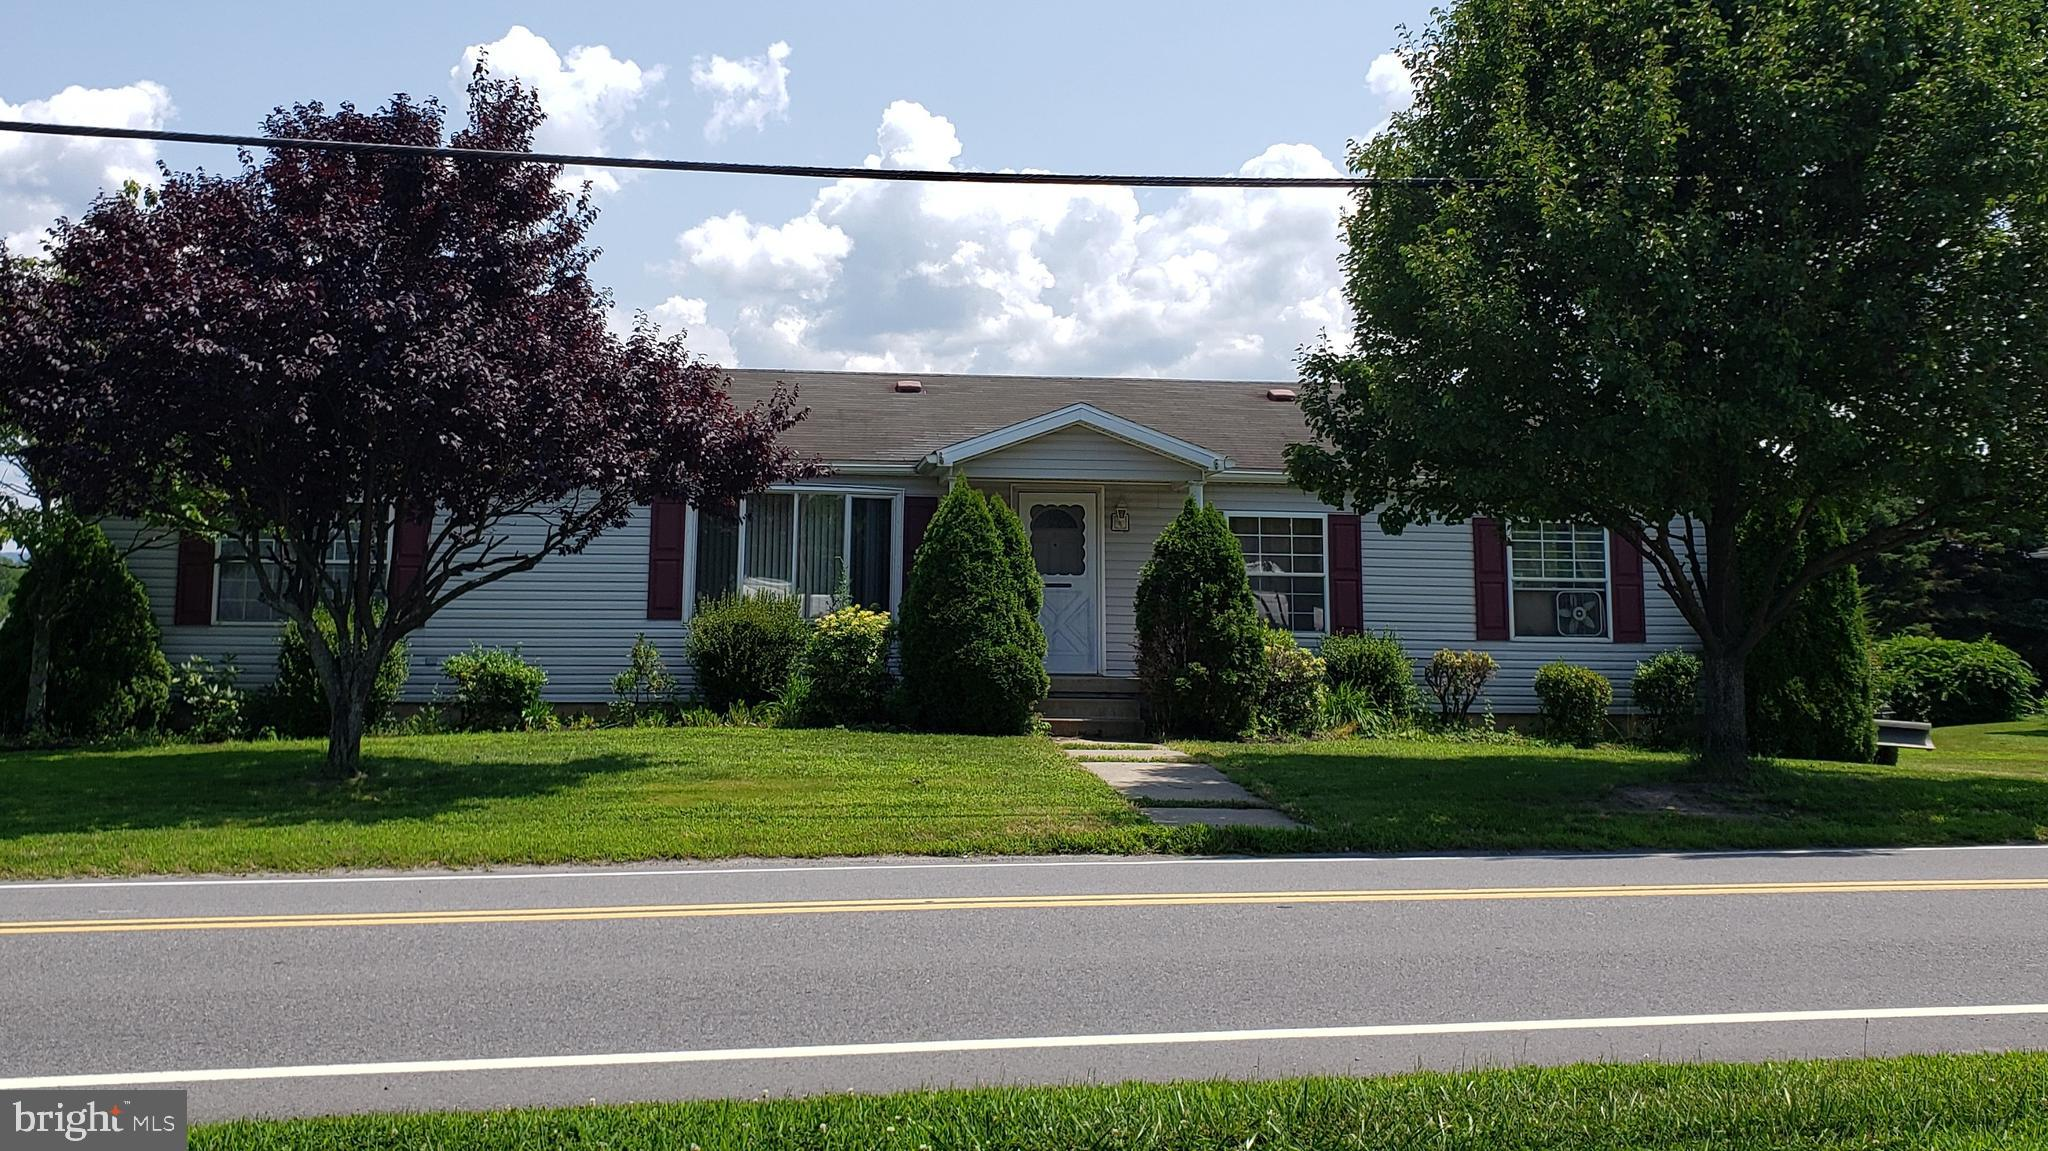 60 FOOTE AVENUE, DURYEA, PA 18642